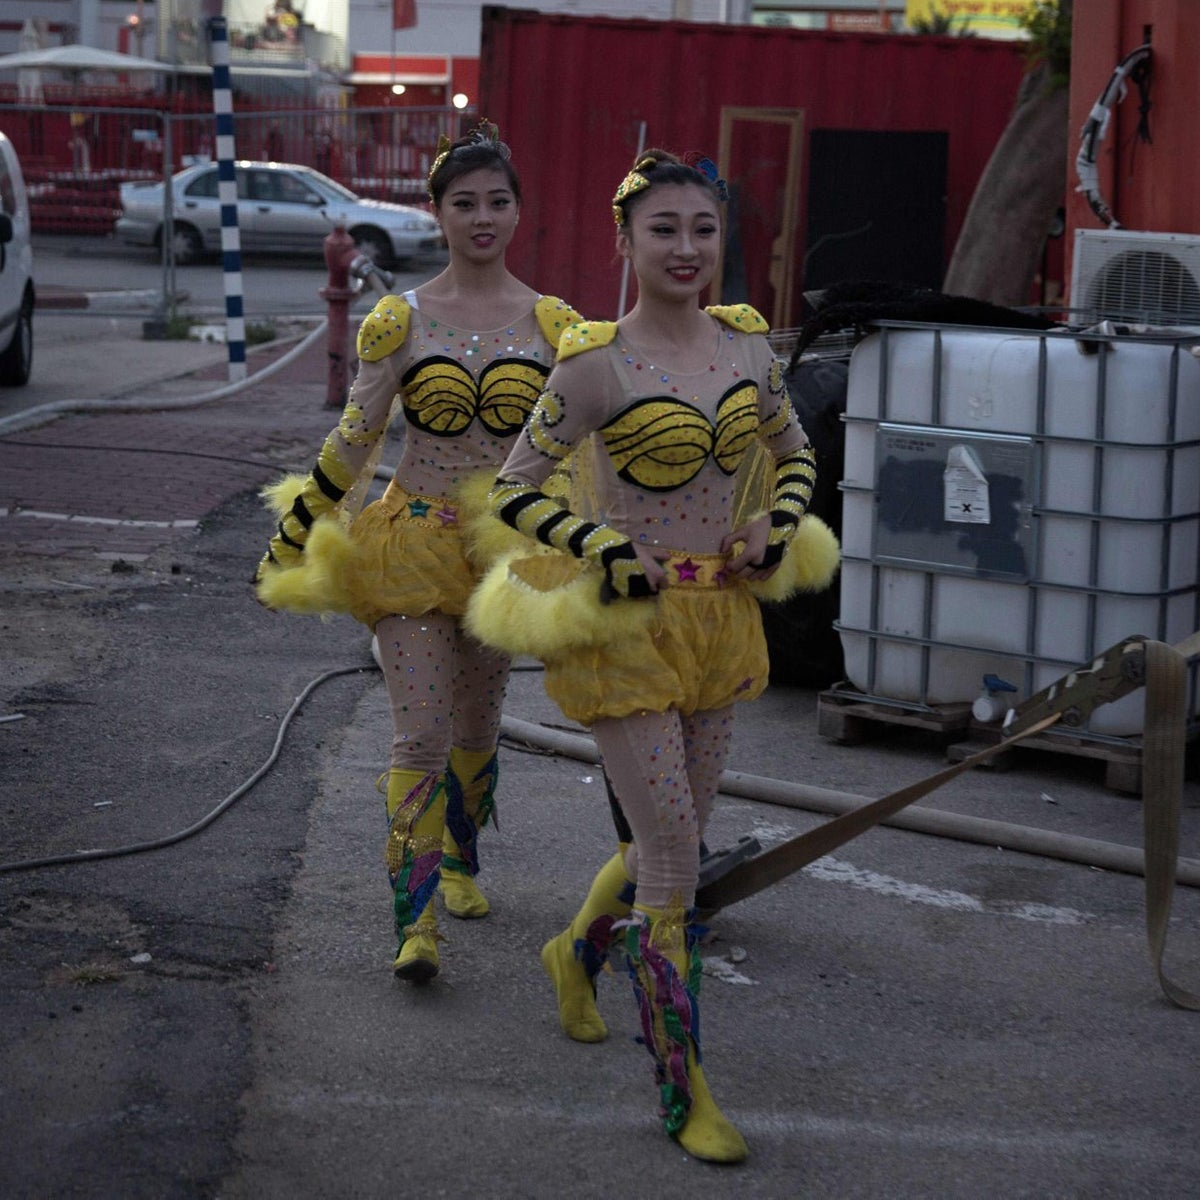 Chinese circus acrobats from the Hebei acrobatic troupe dressed up in costumes rush to get to the backstage area prior to their performance in the northern Israeli port city of Haifa on March 29, 2016.